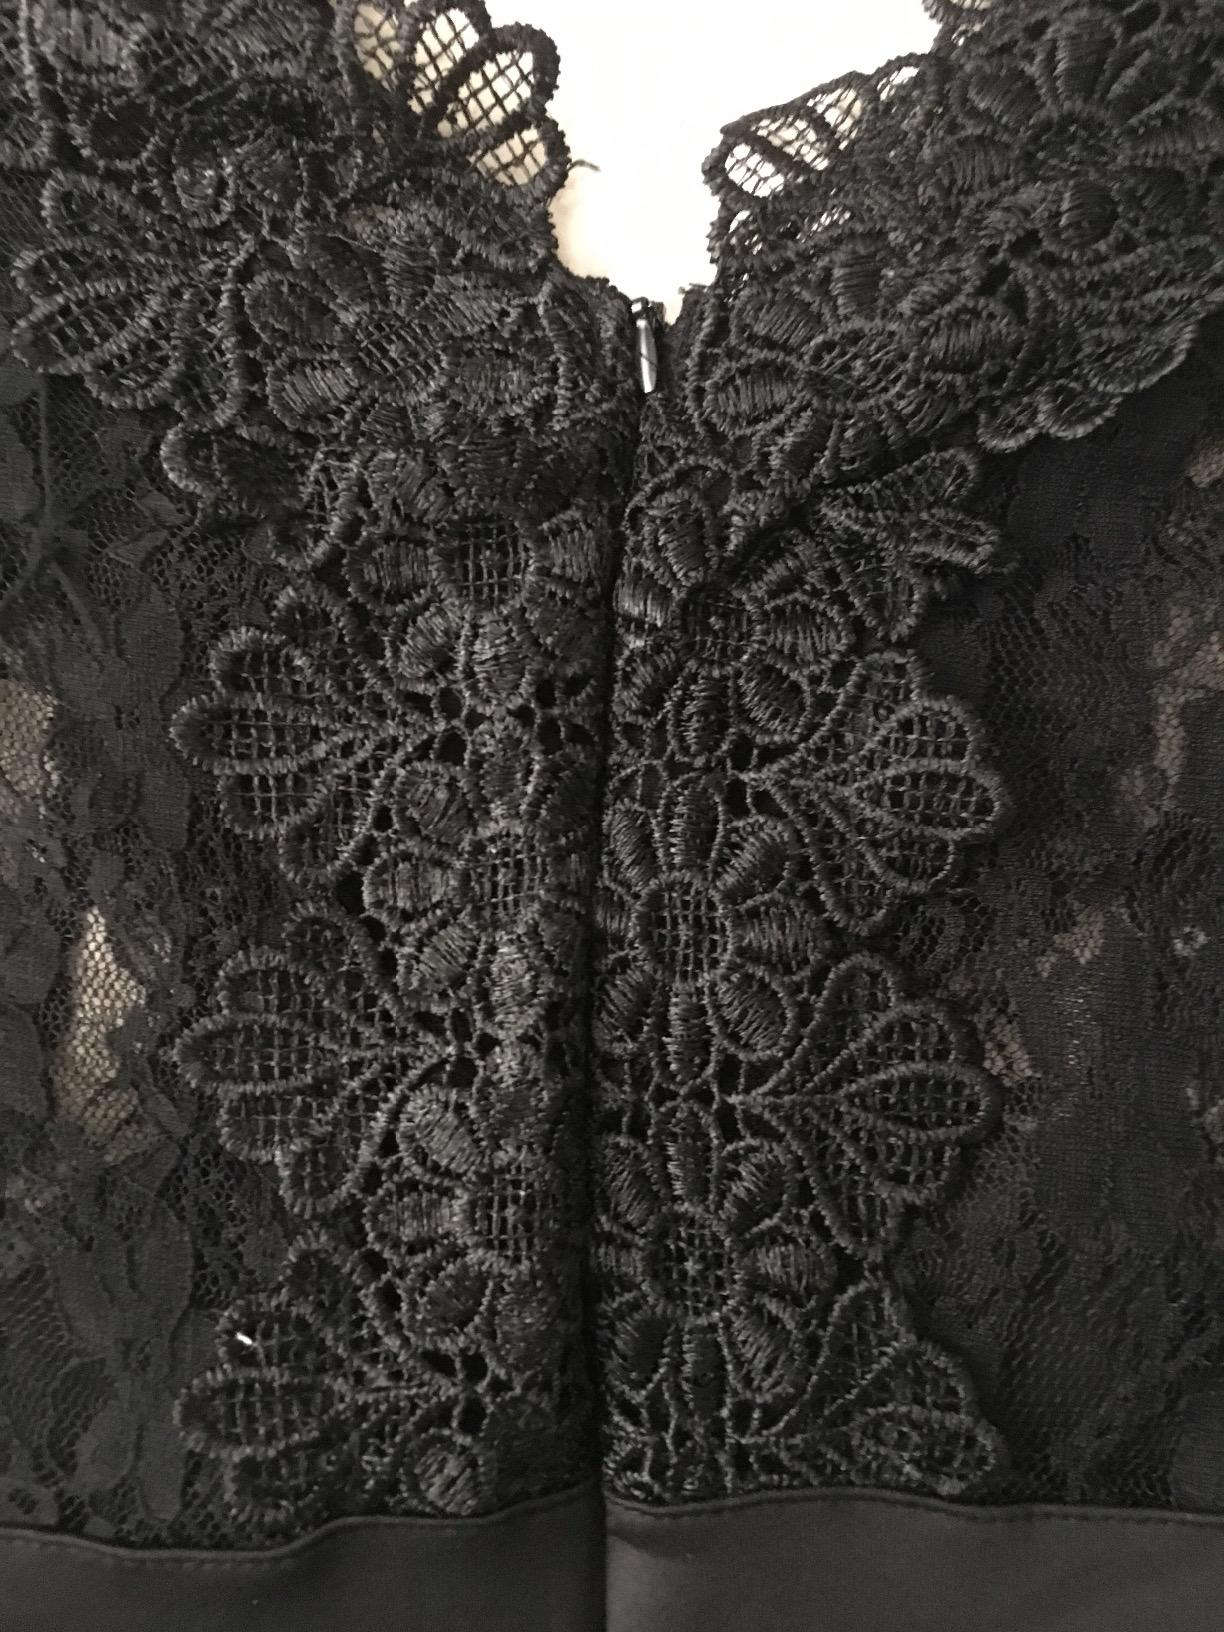 8e565a29d US  7.6 - Sexy Flower Lace Black Party Dress 26811 - www.global ...